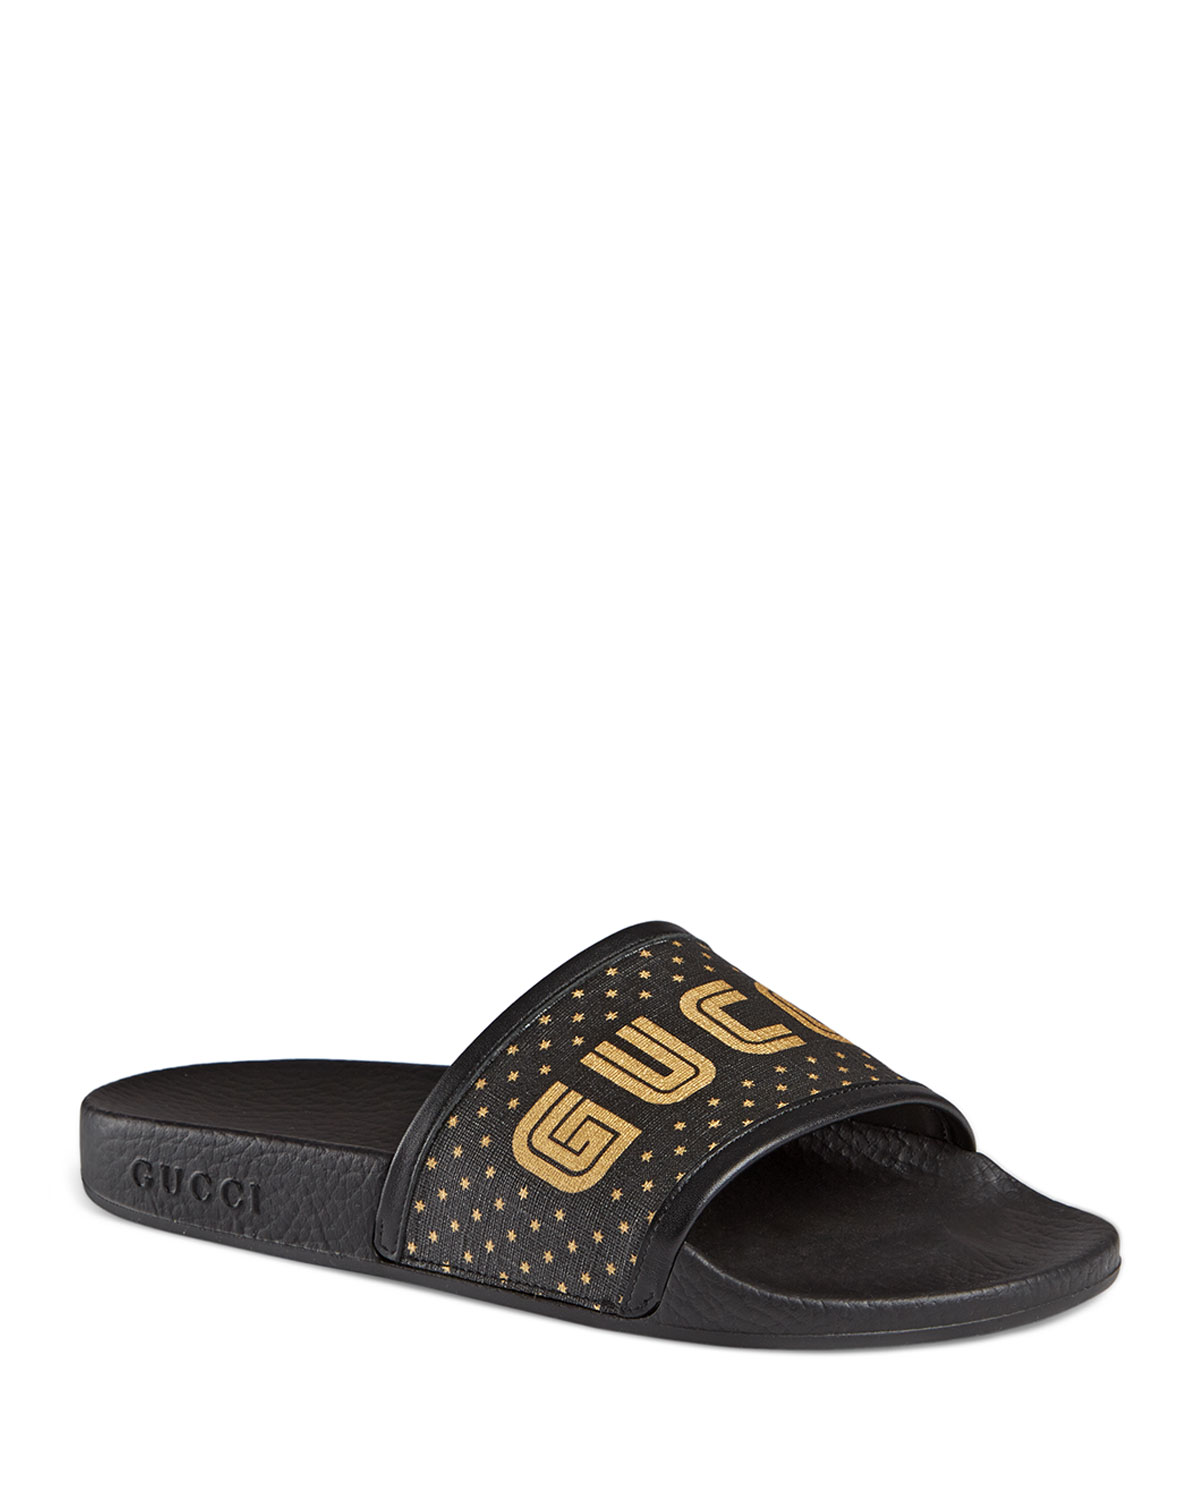 7fb1ae2f6 Gucci Pursuit Guccy Slide | Neiman Marcus